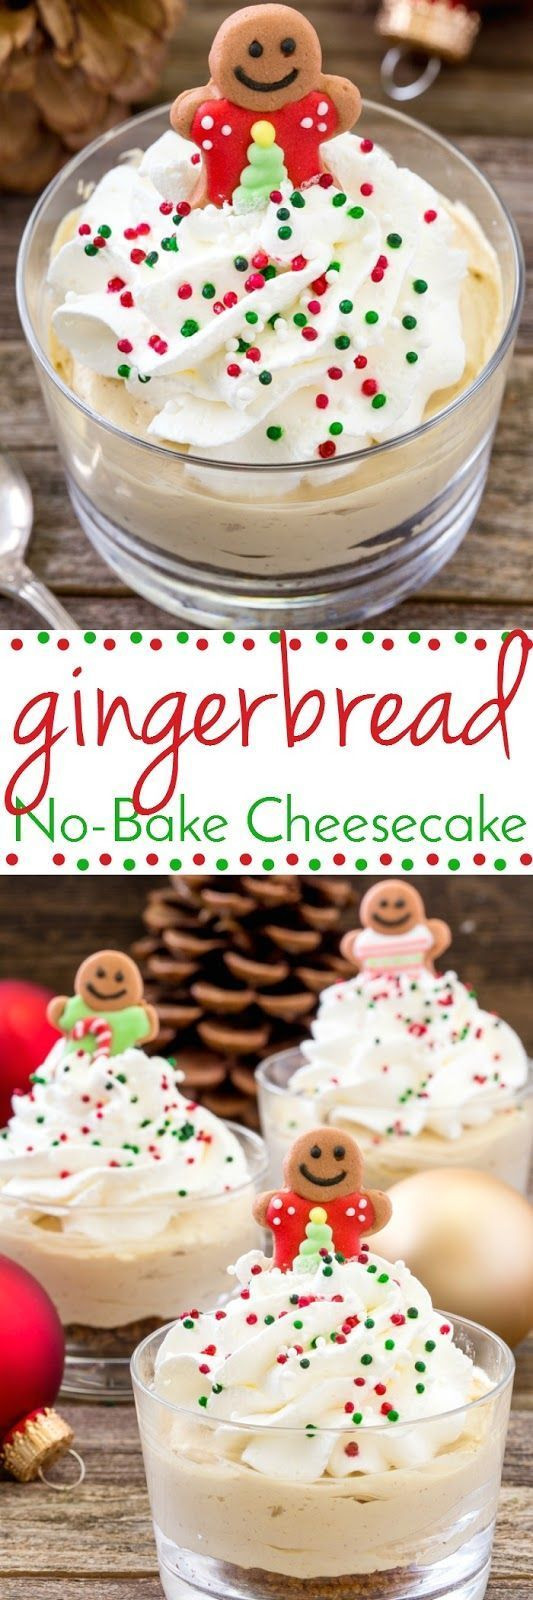 Christmas Desserts Pinterest  17 Best images about Christmas Desserts on Pinterest